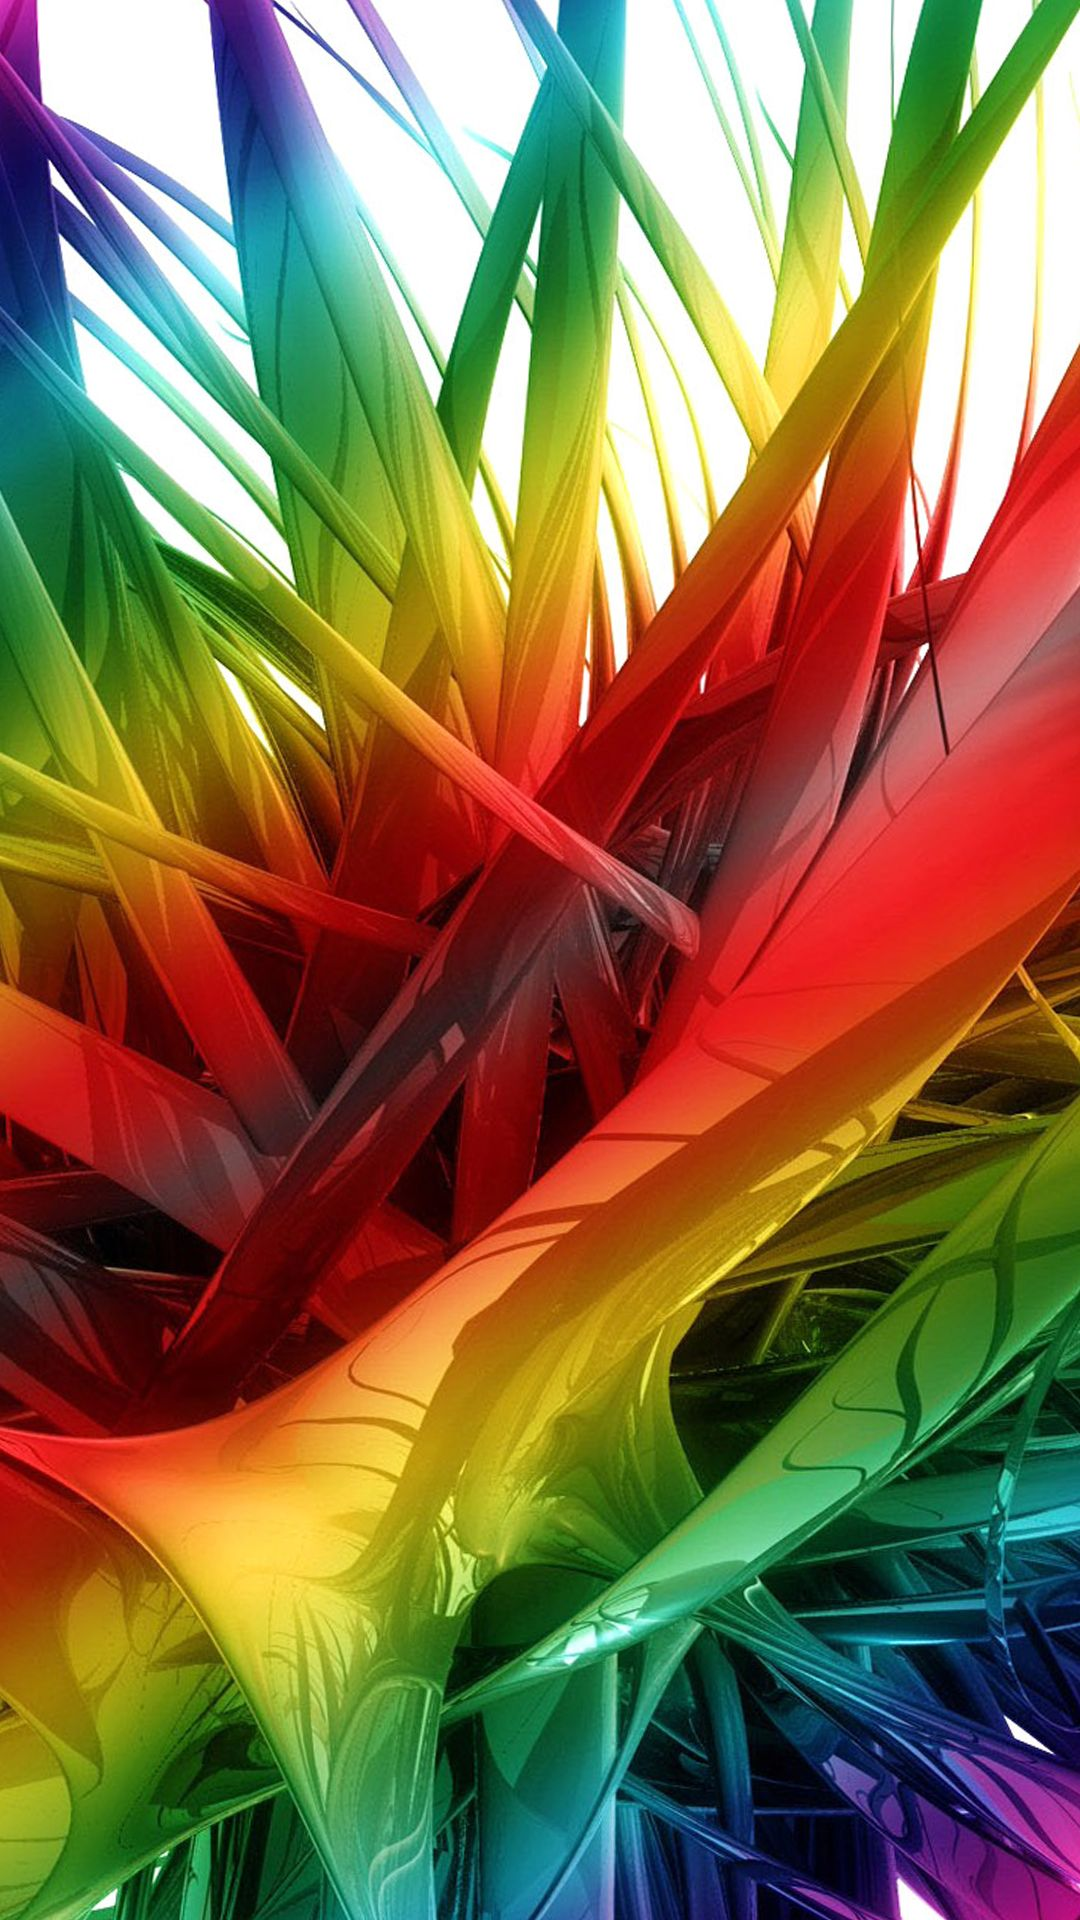 Abstract Colorful Wallpaper For Android Phones With 5 Inch